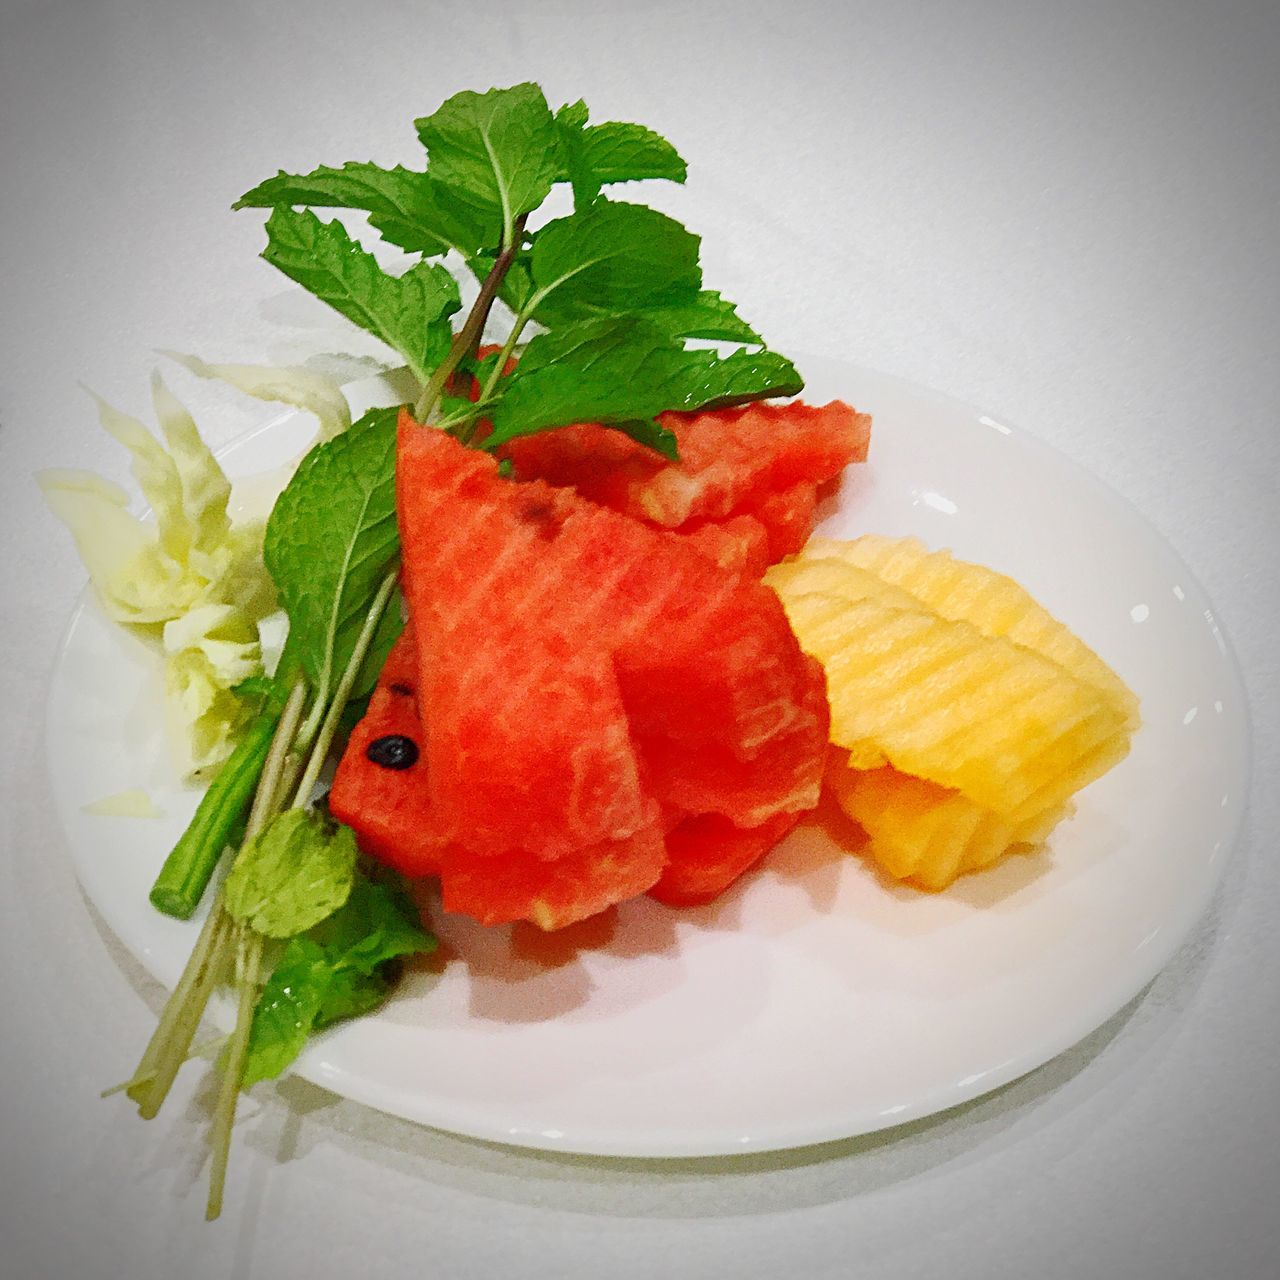 Fruits ♡ Freshness Healthy Eating Ready-to-eat Water Melon Cantaloupe Herb Healthy Lifestyle Health Food